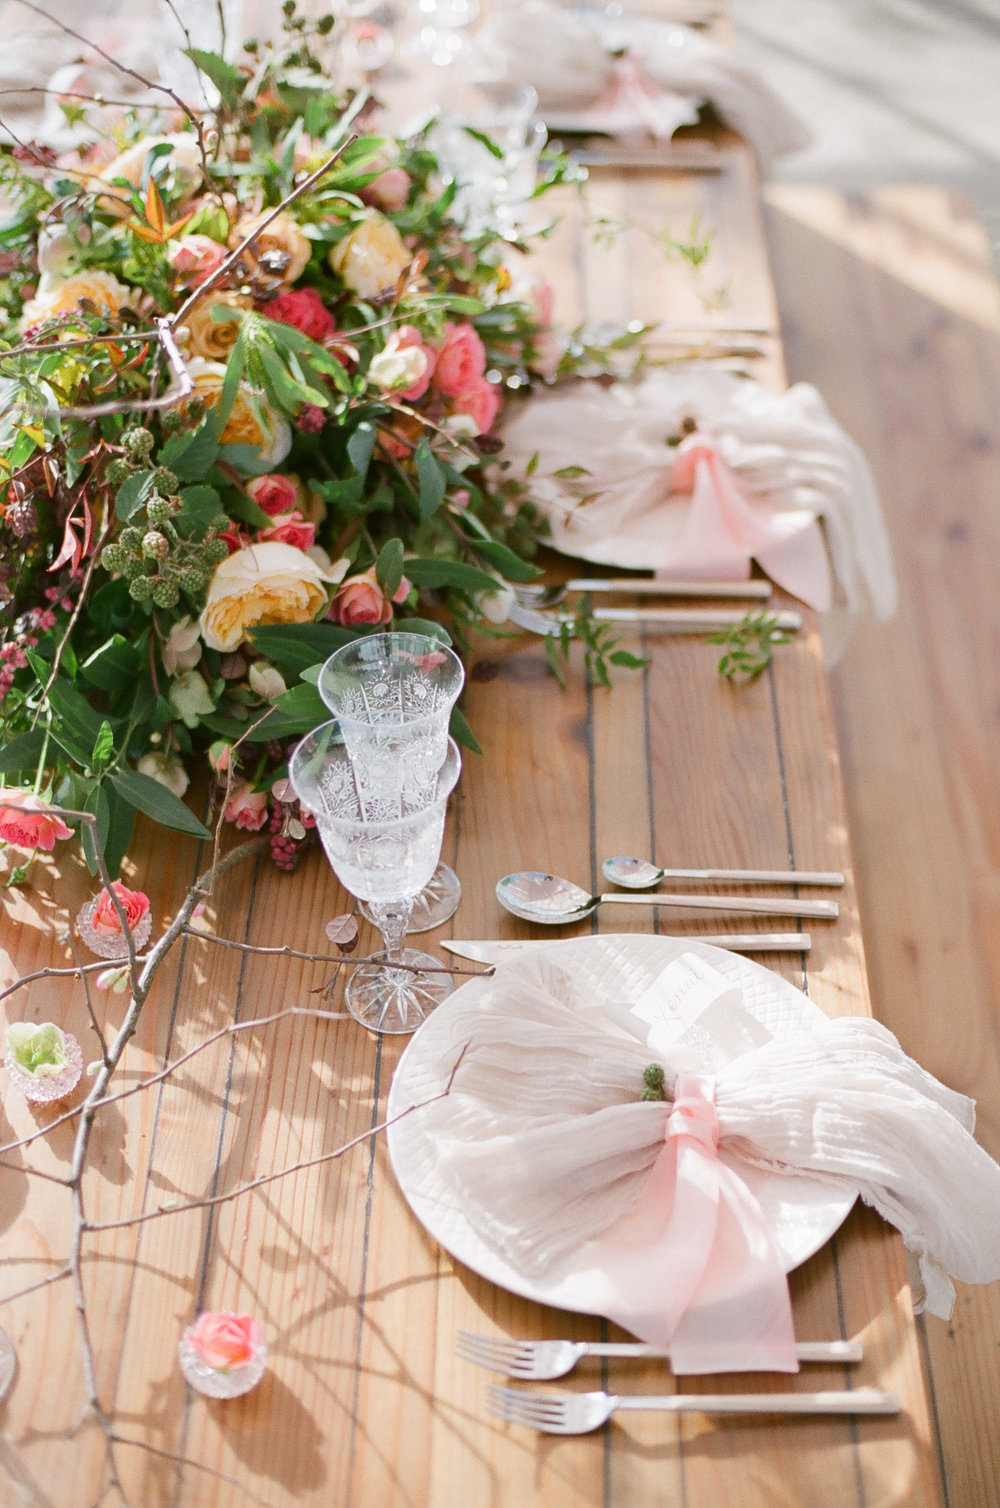 www.santabarbarawedding.com | Megan Sorel Photography | Dos Pueblos Orchid Farm | Table Setting